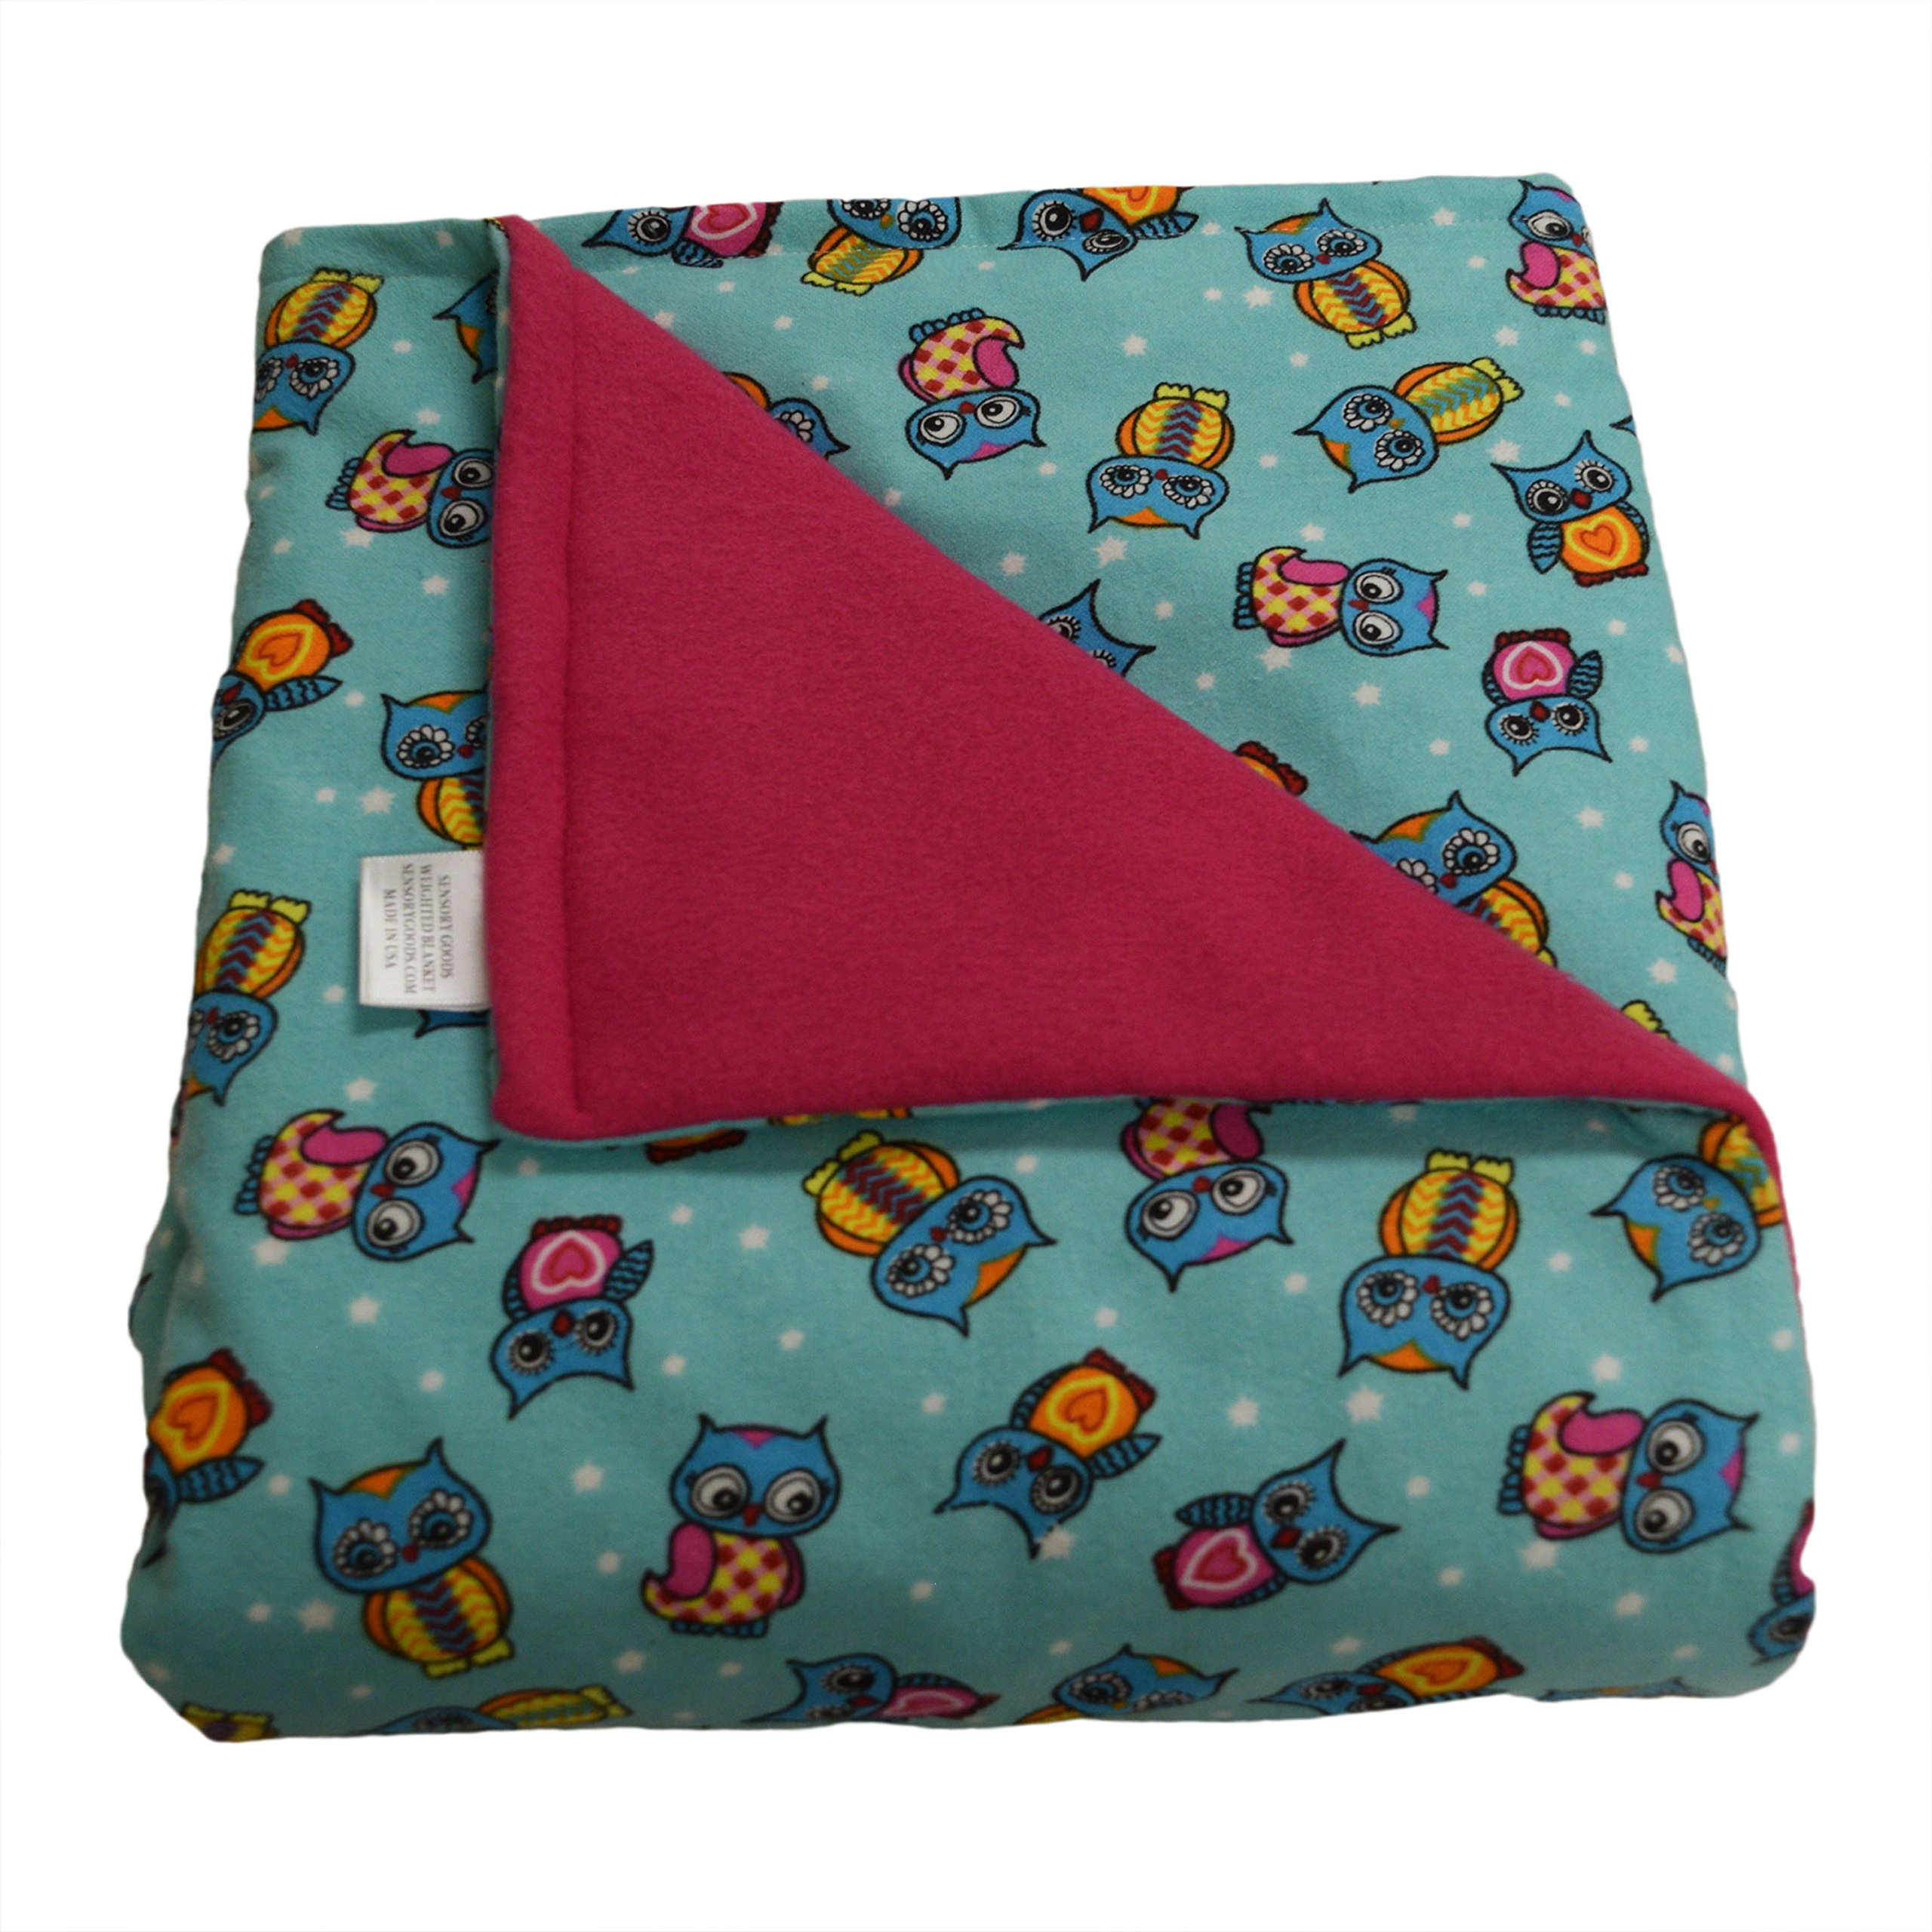 SENSORY GOODS Child Small Weighted Blanket Made in America - 4lb Low Pressure - Owls Pattern/Hot Pink - Fleece/Flannel (48'' x 30'') Provides Comfort and Relaxation.